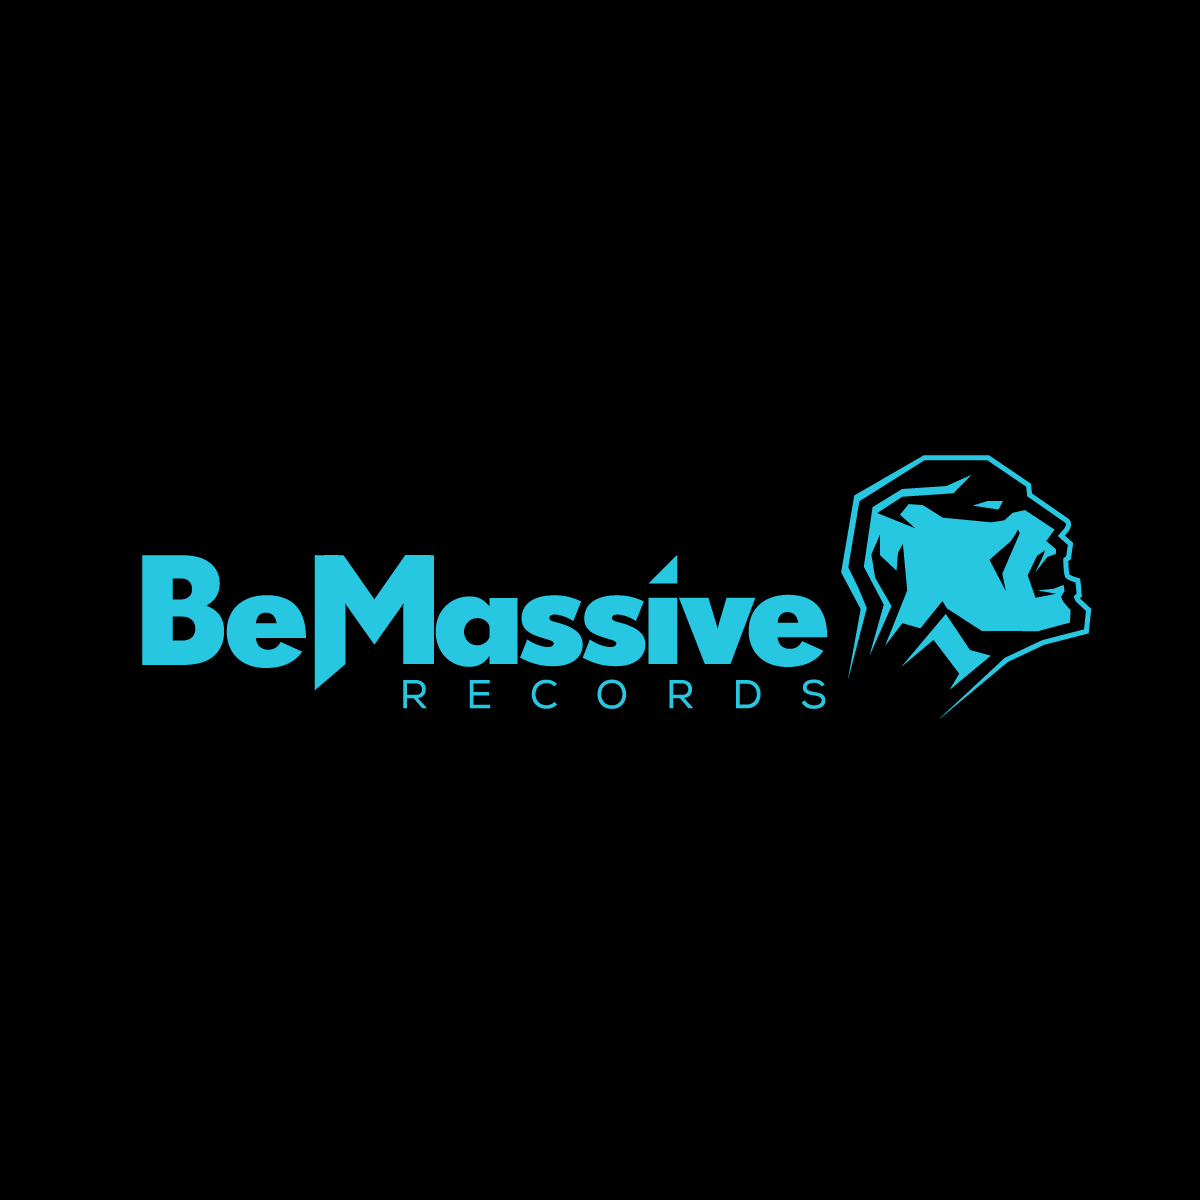 be_massive_logo1200x1200.jpg